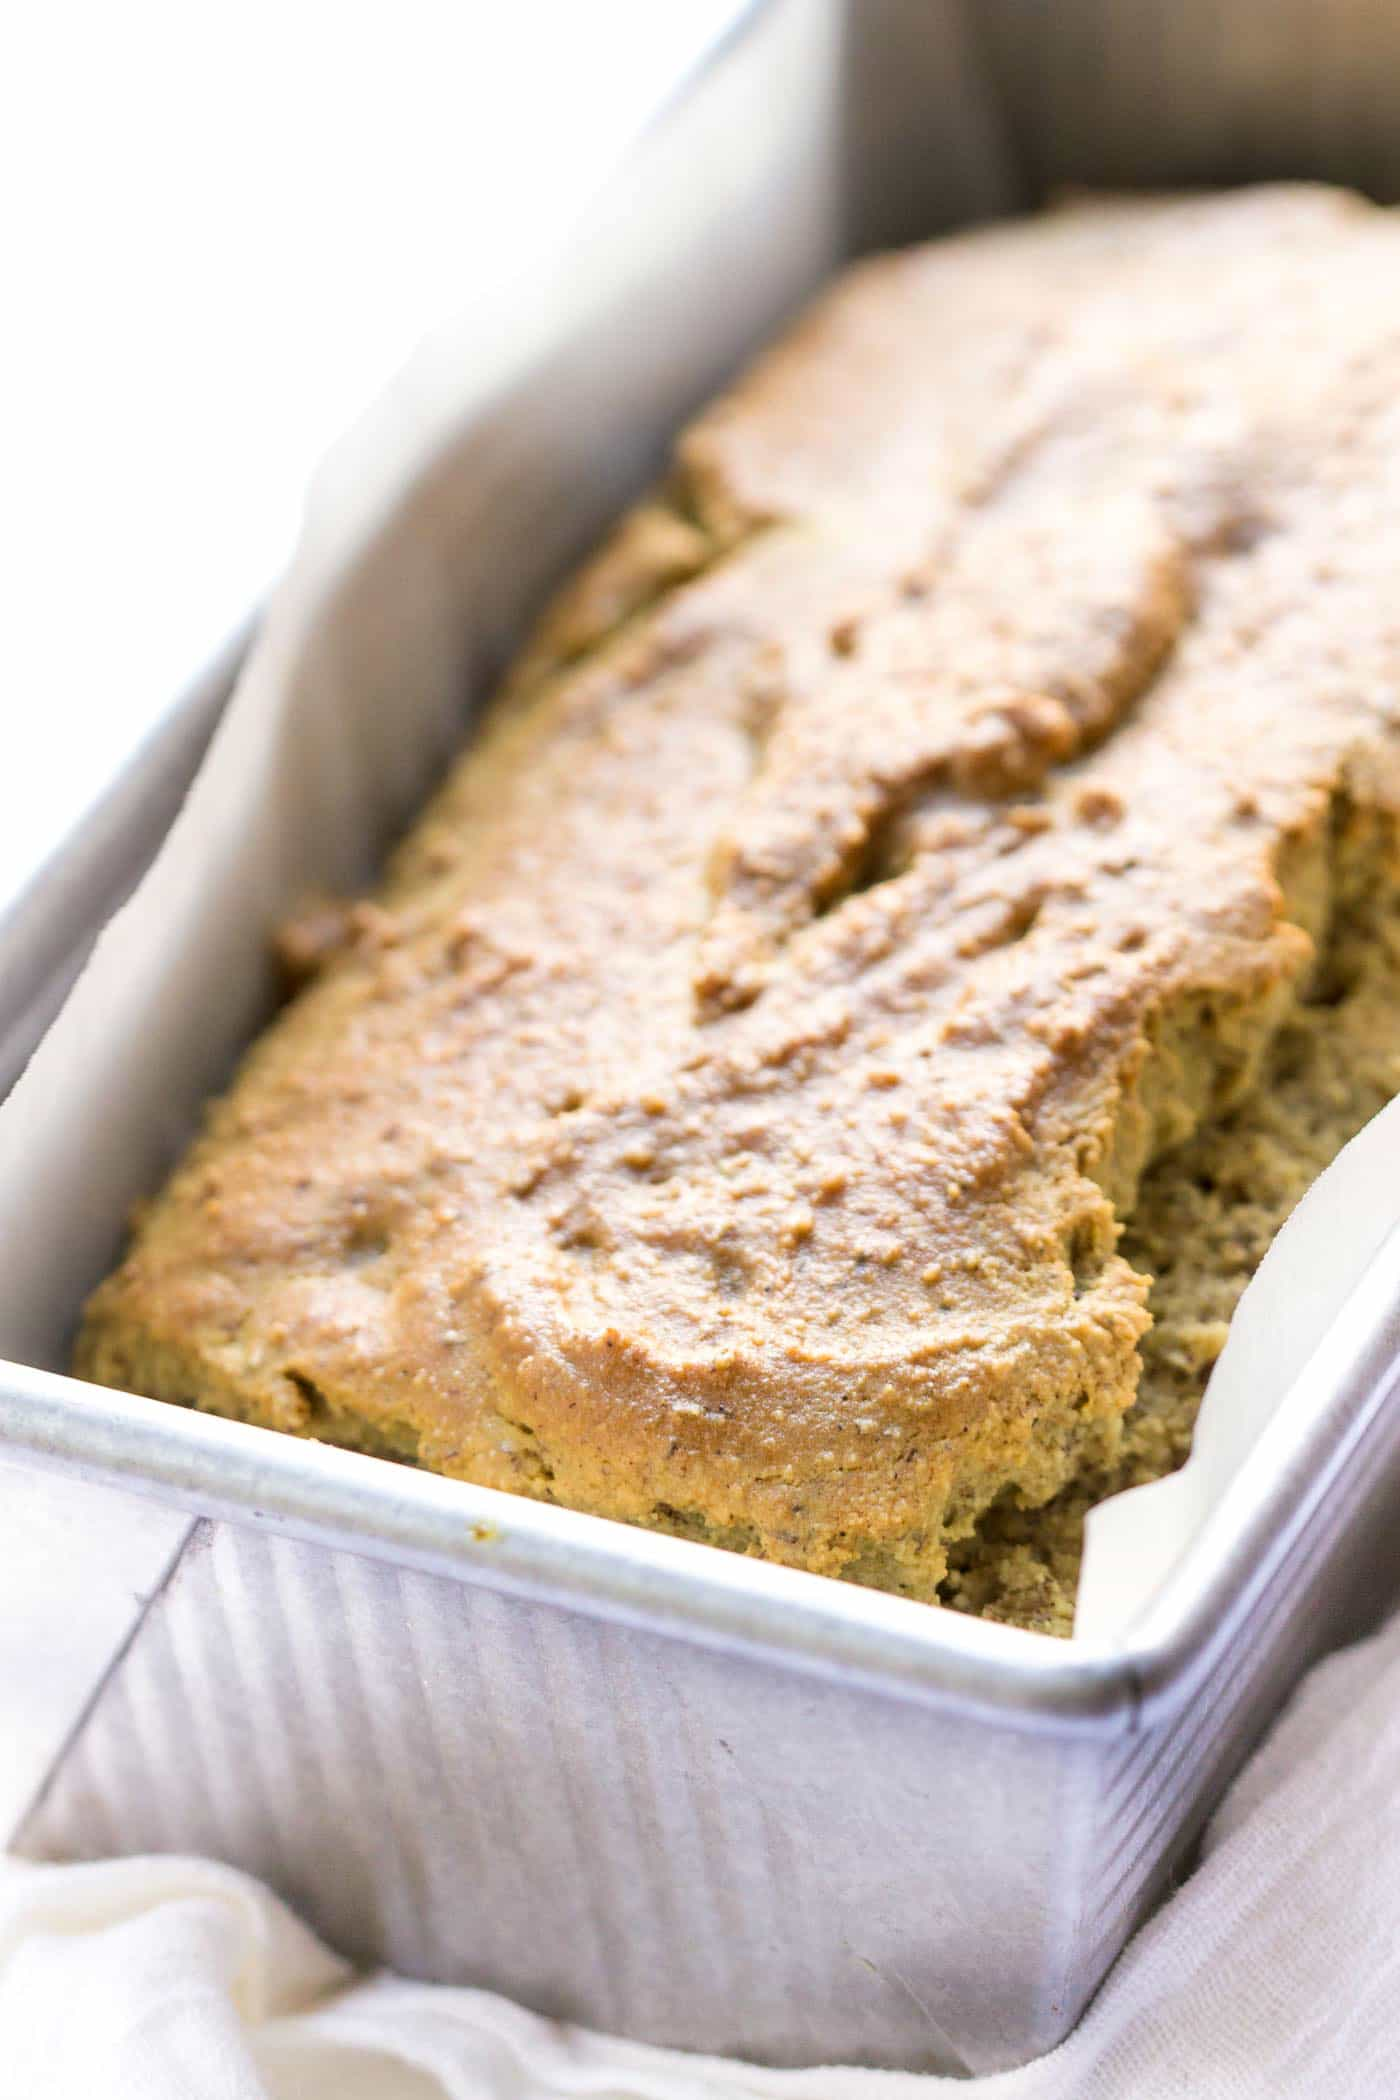 Super easy GLUTEN-FREE BREAD! Made with quinoa and almond flour, no yeast and no dairy!